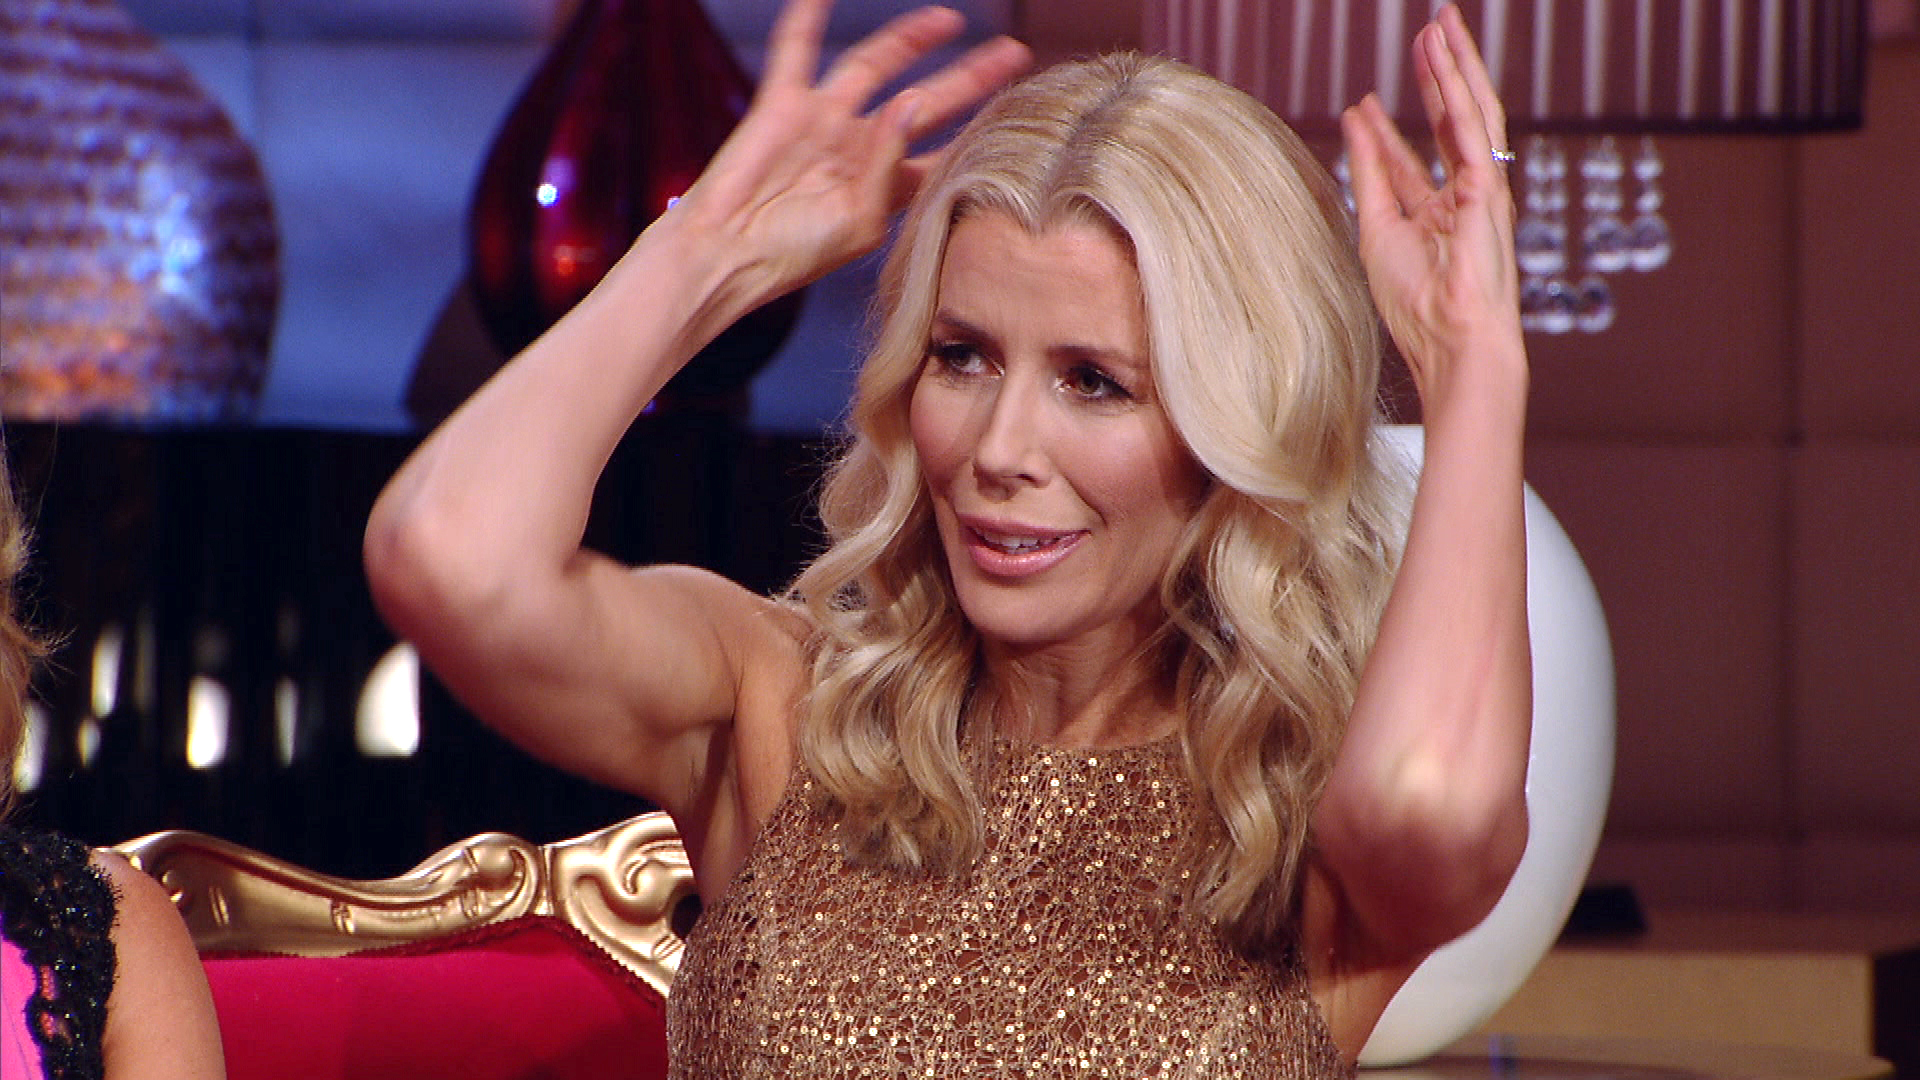 RHONY's Biggest Fashion Regrets